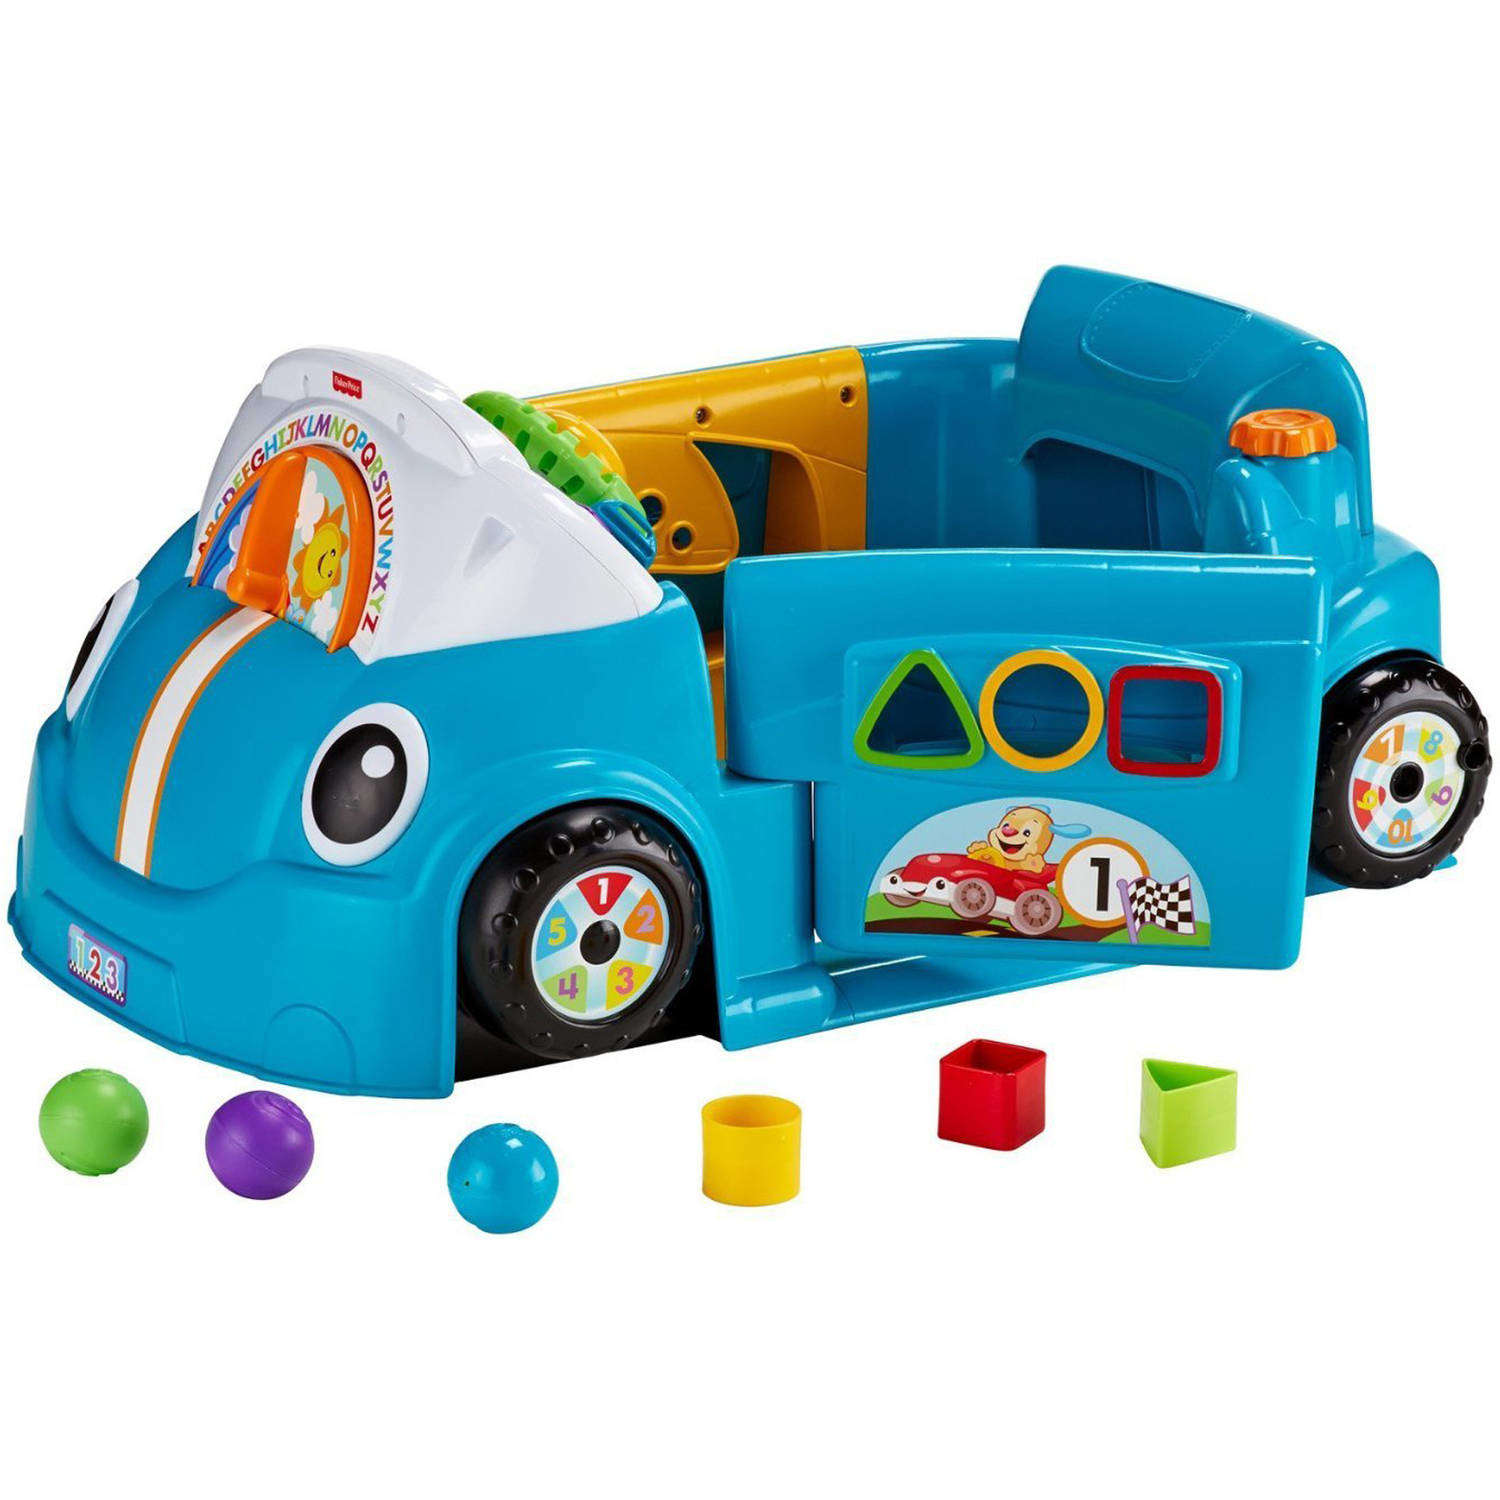 Fisher Price Laugh & Learn Smart Stages Crawl Around Car, Blue by LAUGH %26 LEARN